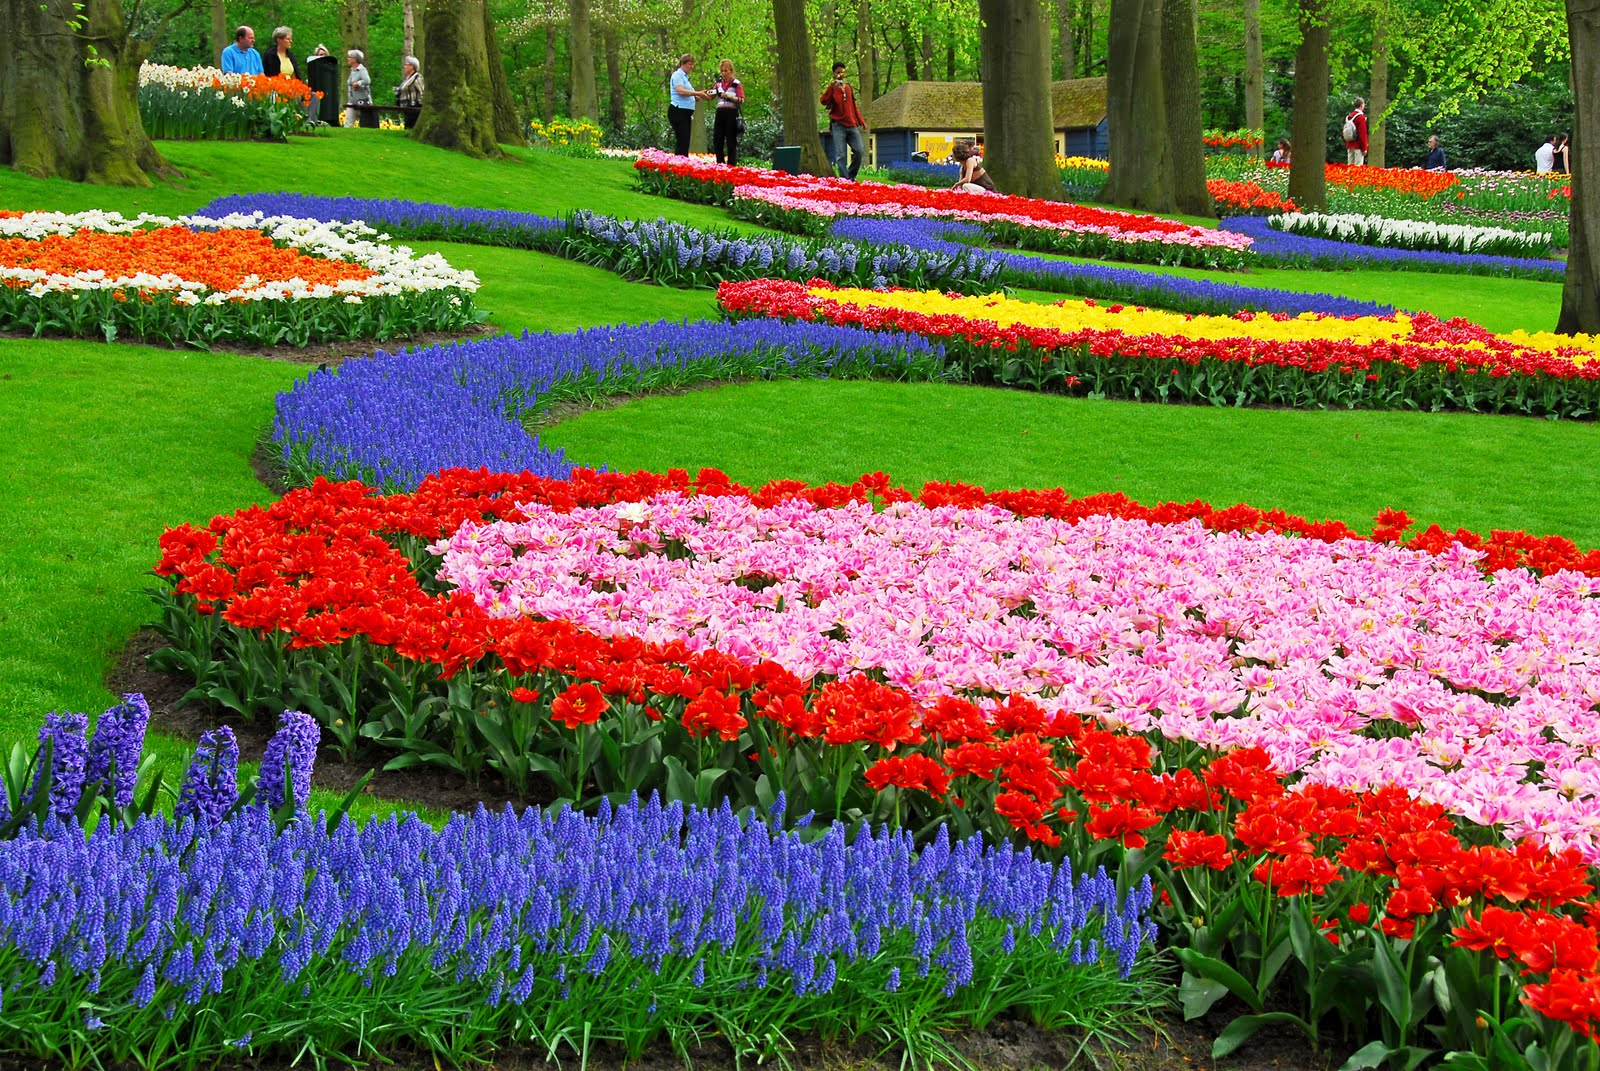 Flowers Gallery: The most Popular Flower Garden in the world